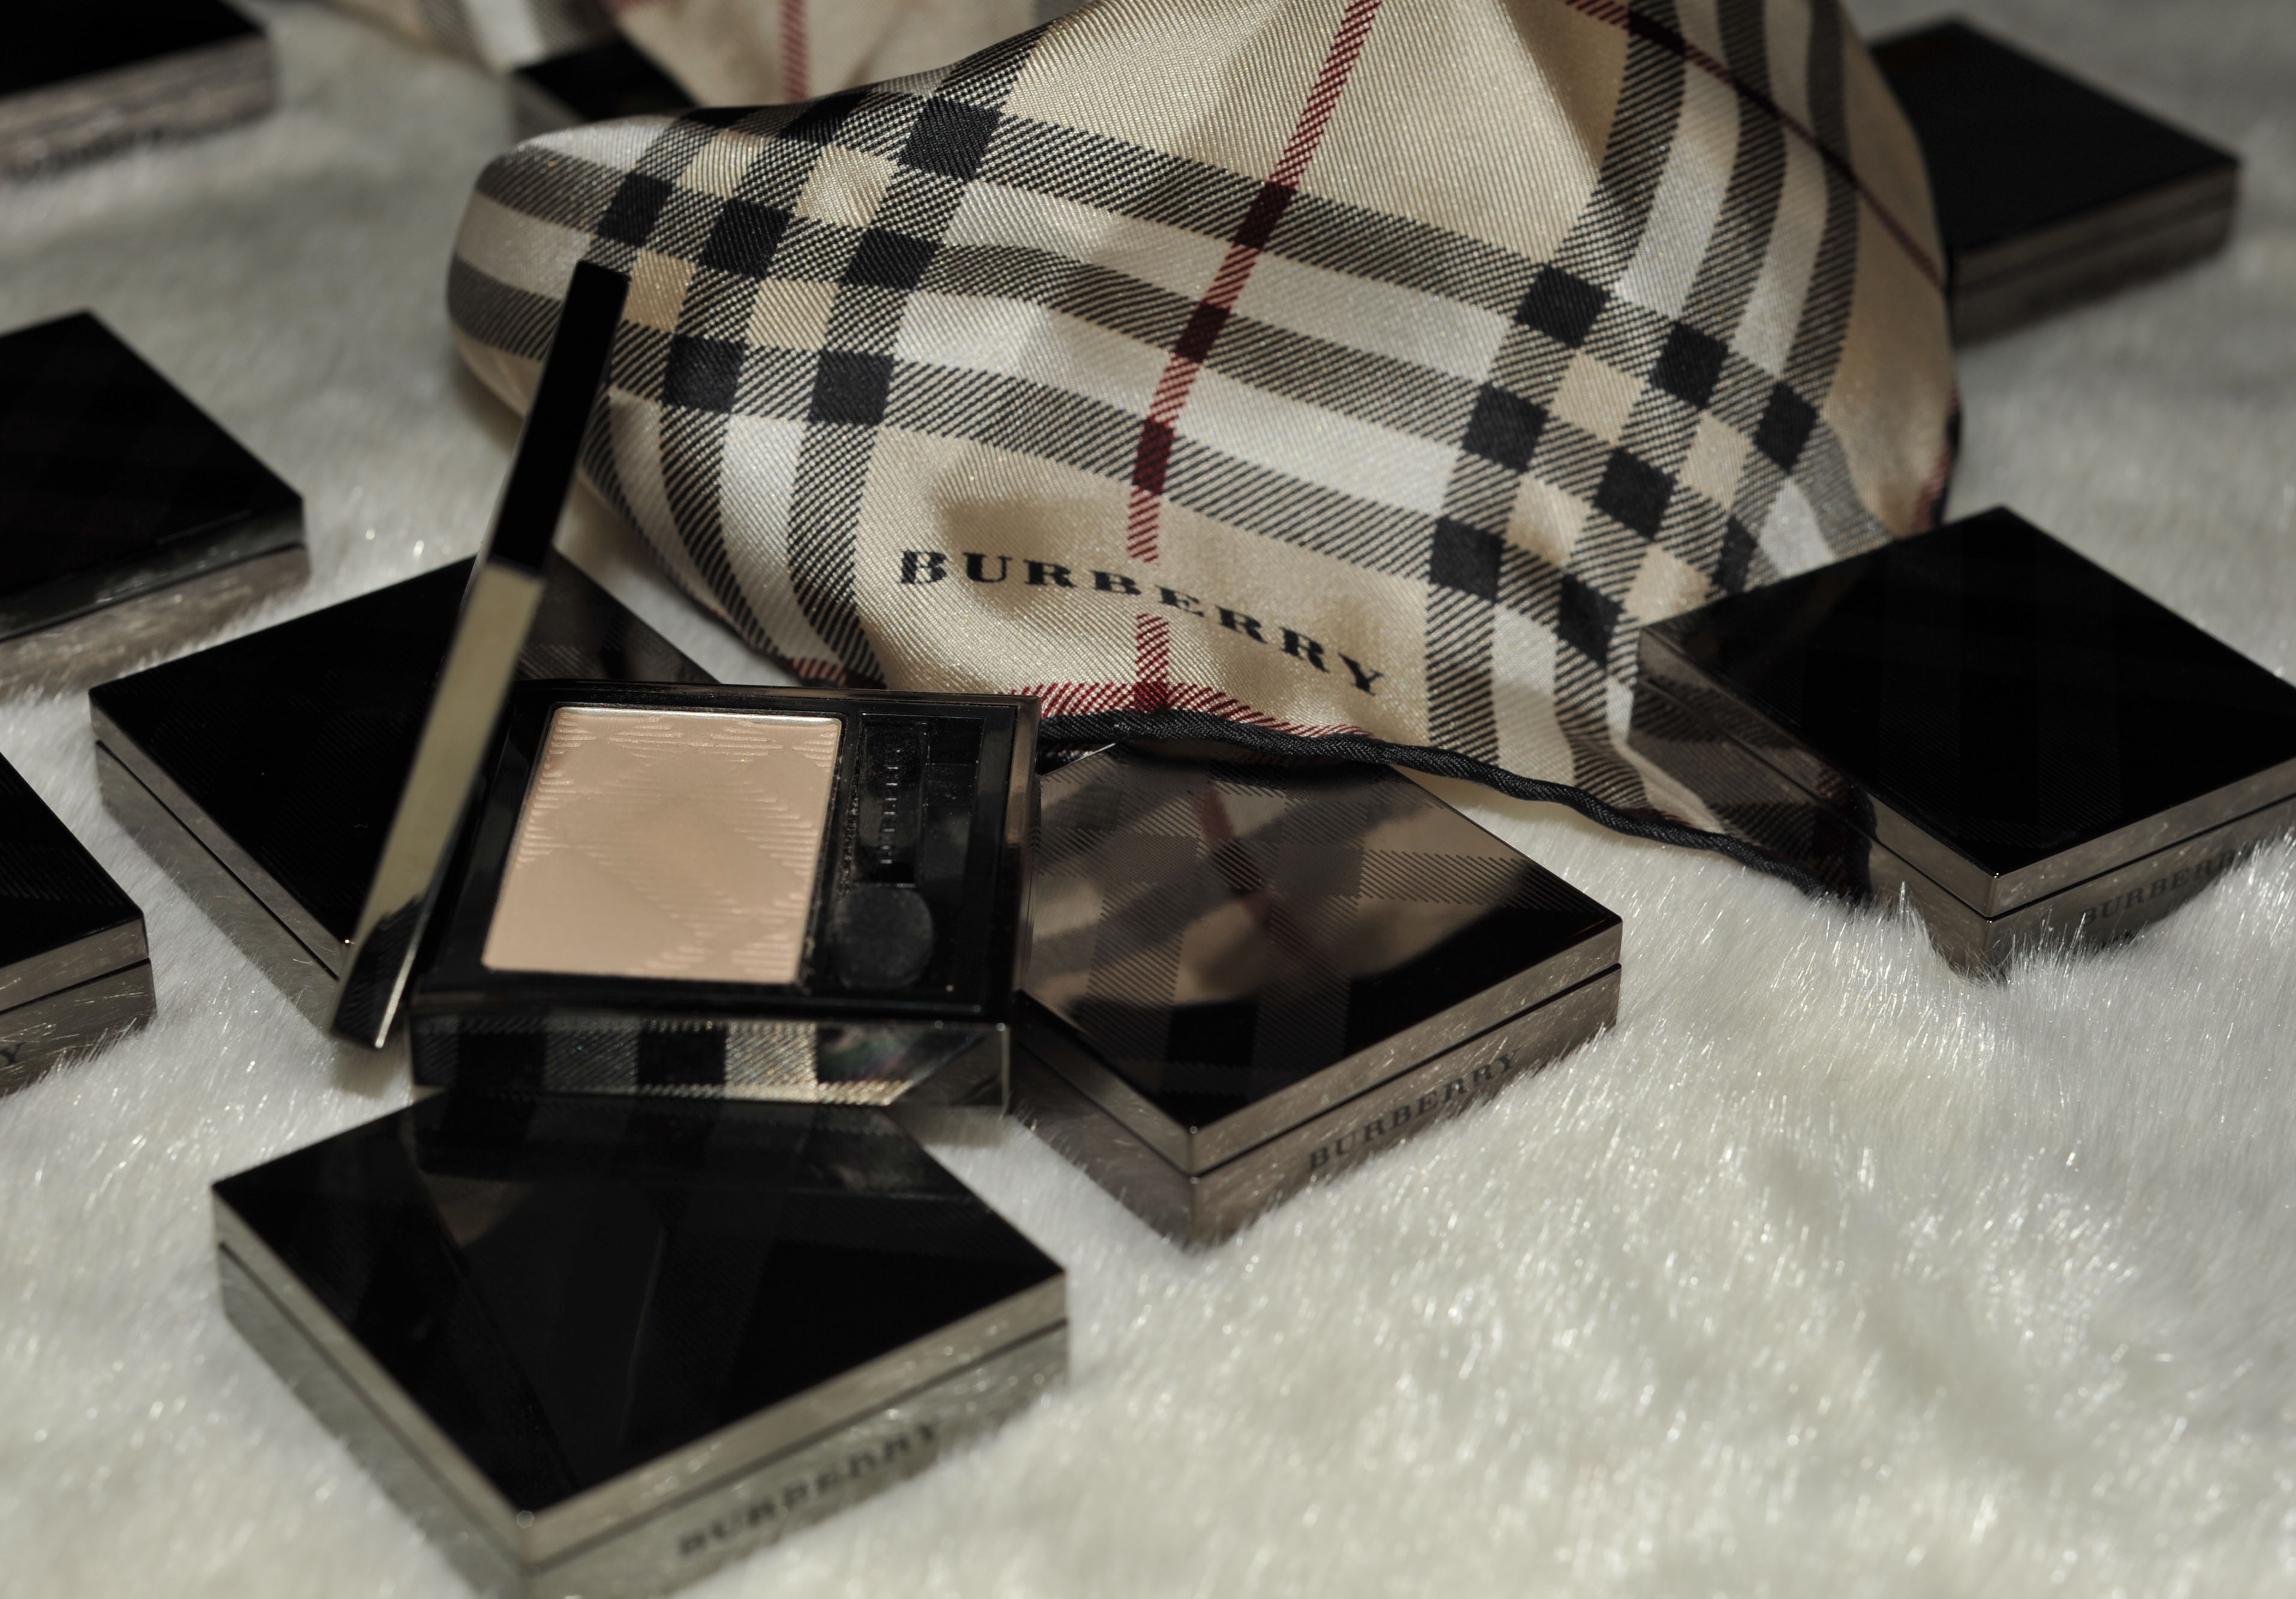 Burberry Eyeshadows Swatches And A